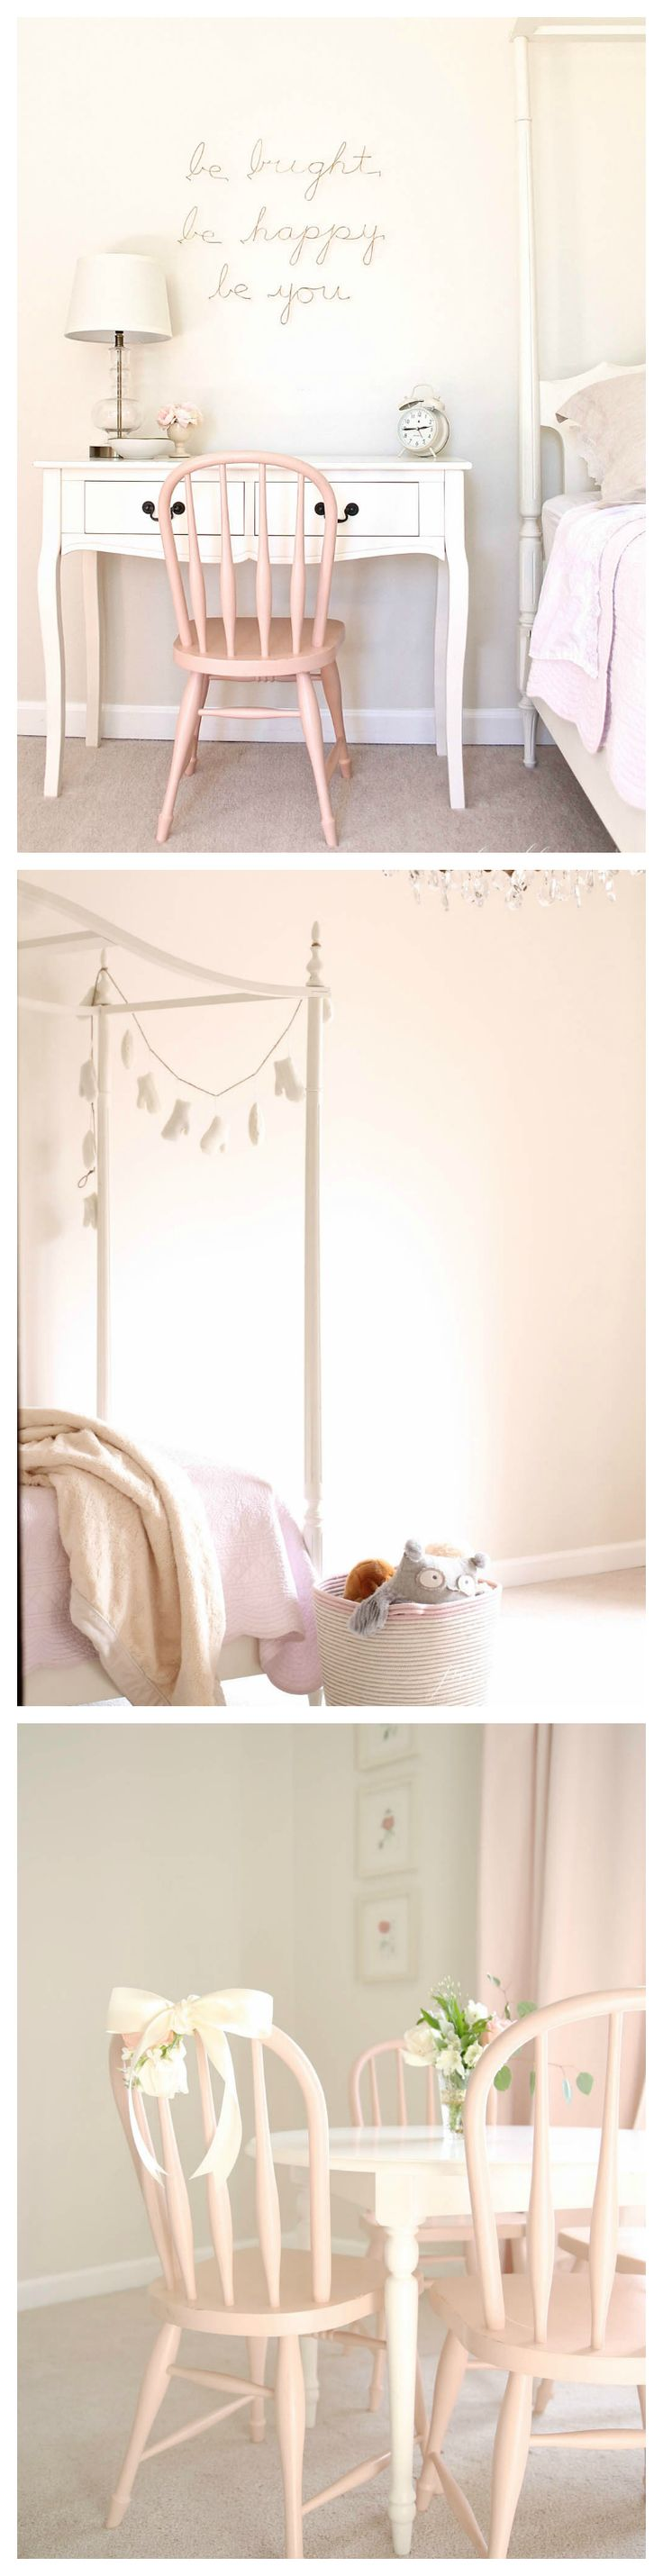 Baby jasper bed brackets - The 25 Best Ideas About Little Girl Beds On Pinterest Pink Kids Bedroom Furniture Ikea Bunk Beds Kids And Loft Bed Curtains